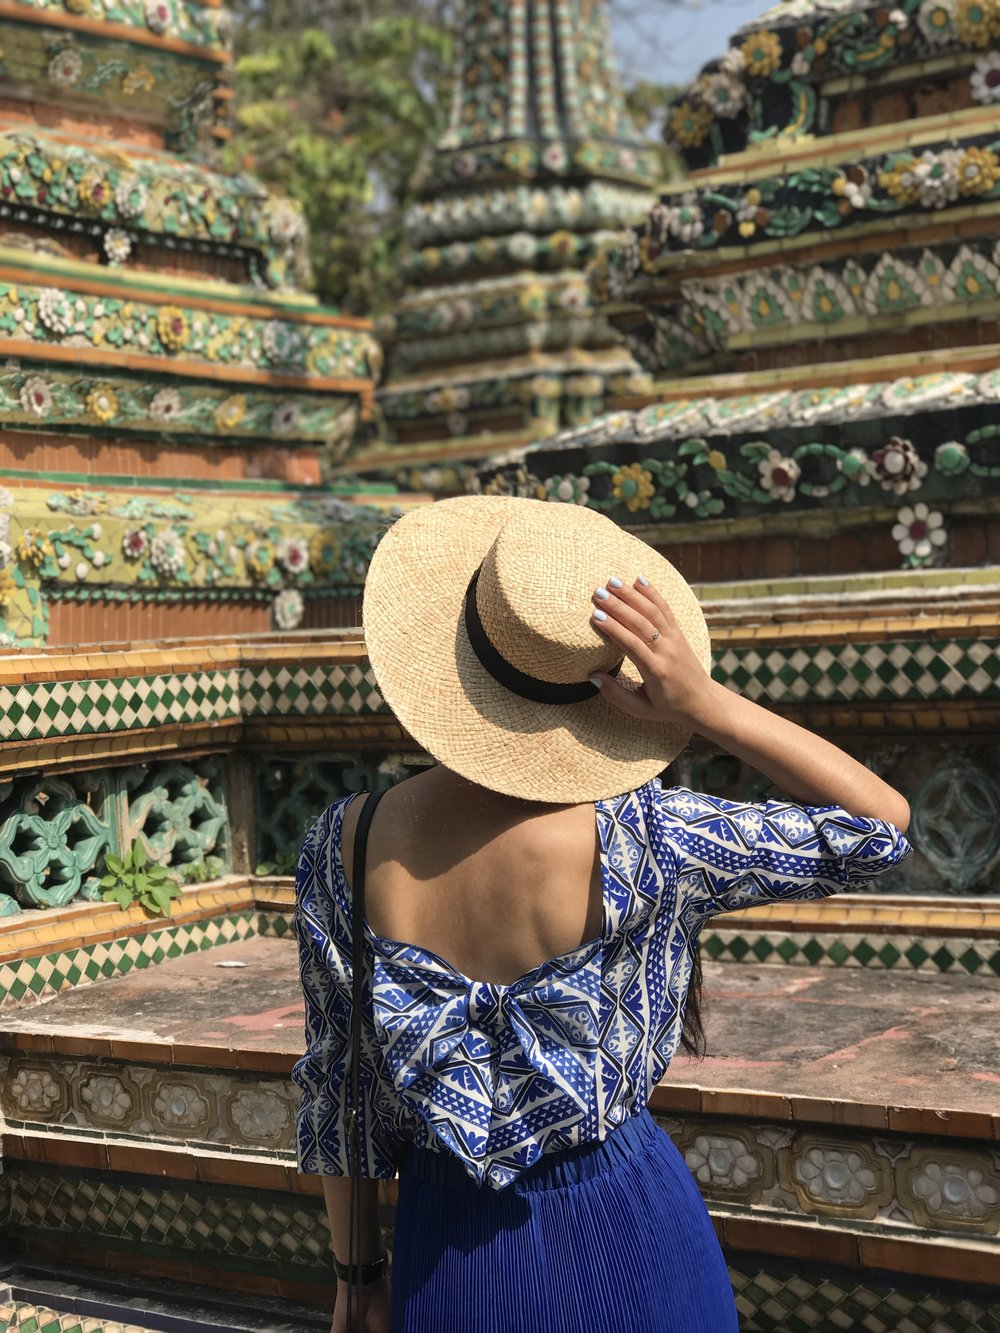 5 Days In Bangkok Our Budget Friendly Itinerary